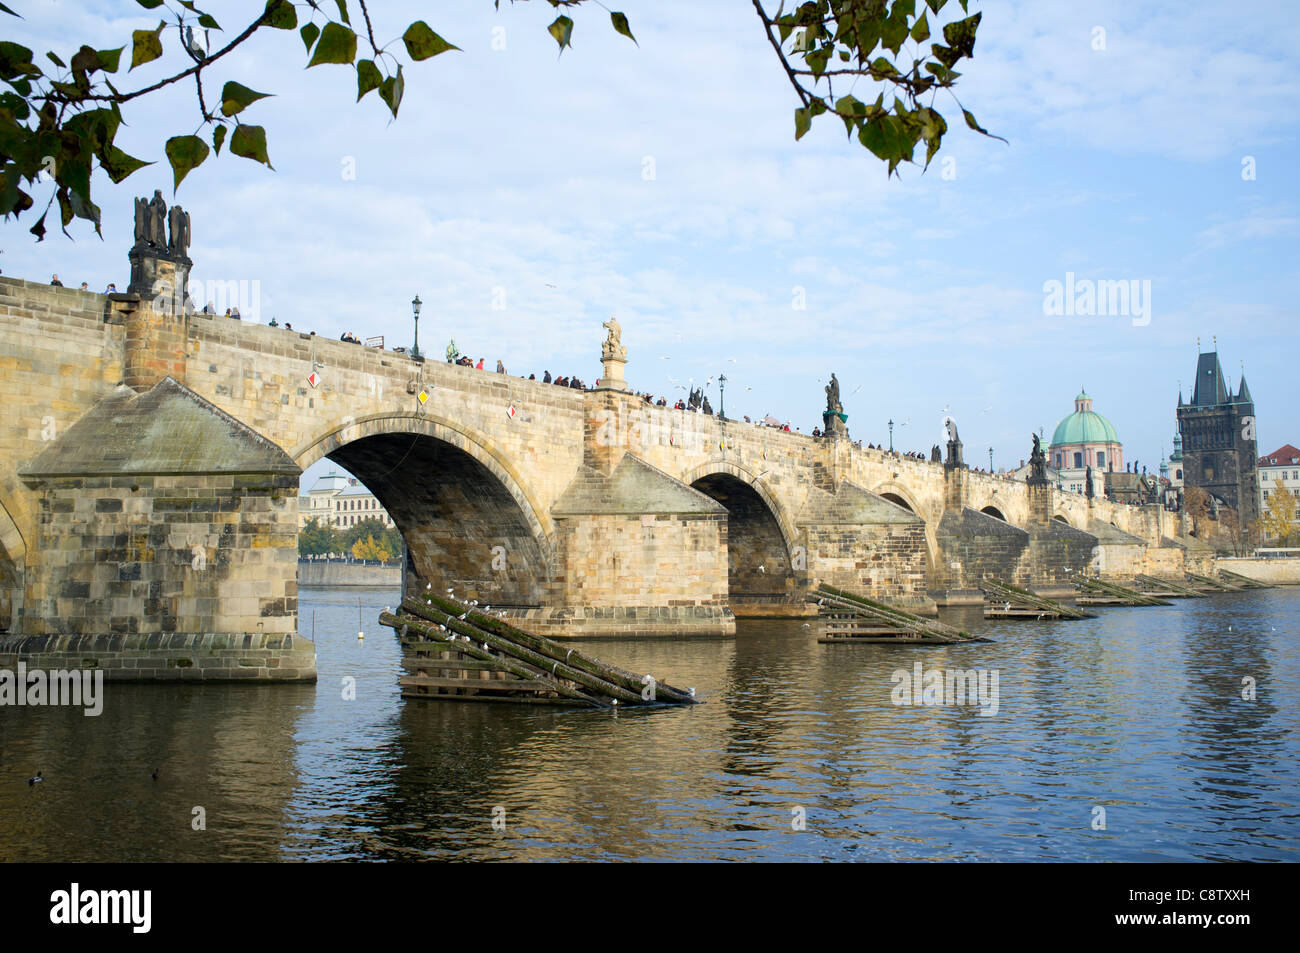 Charles Bridge or Karluv Most in Prague in Czech Republic - Stock Image